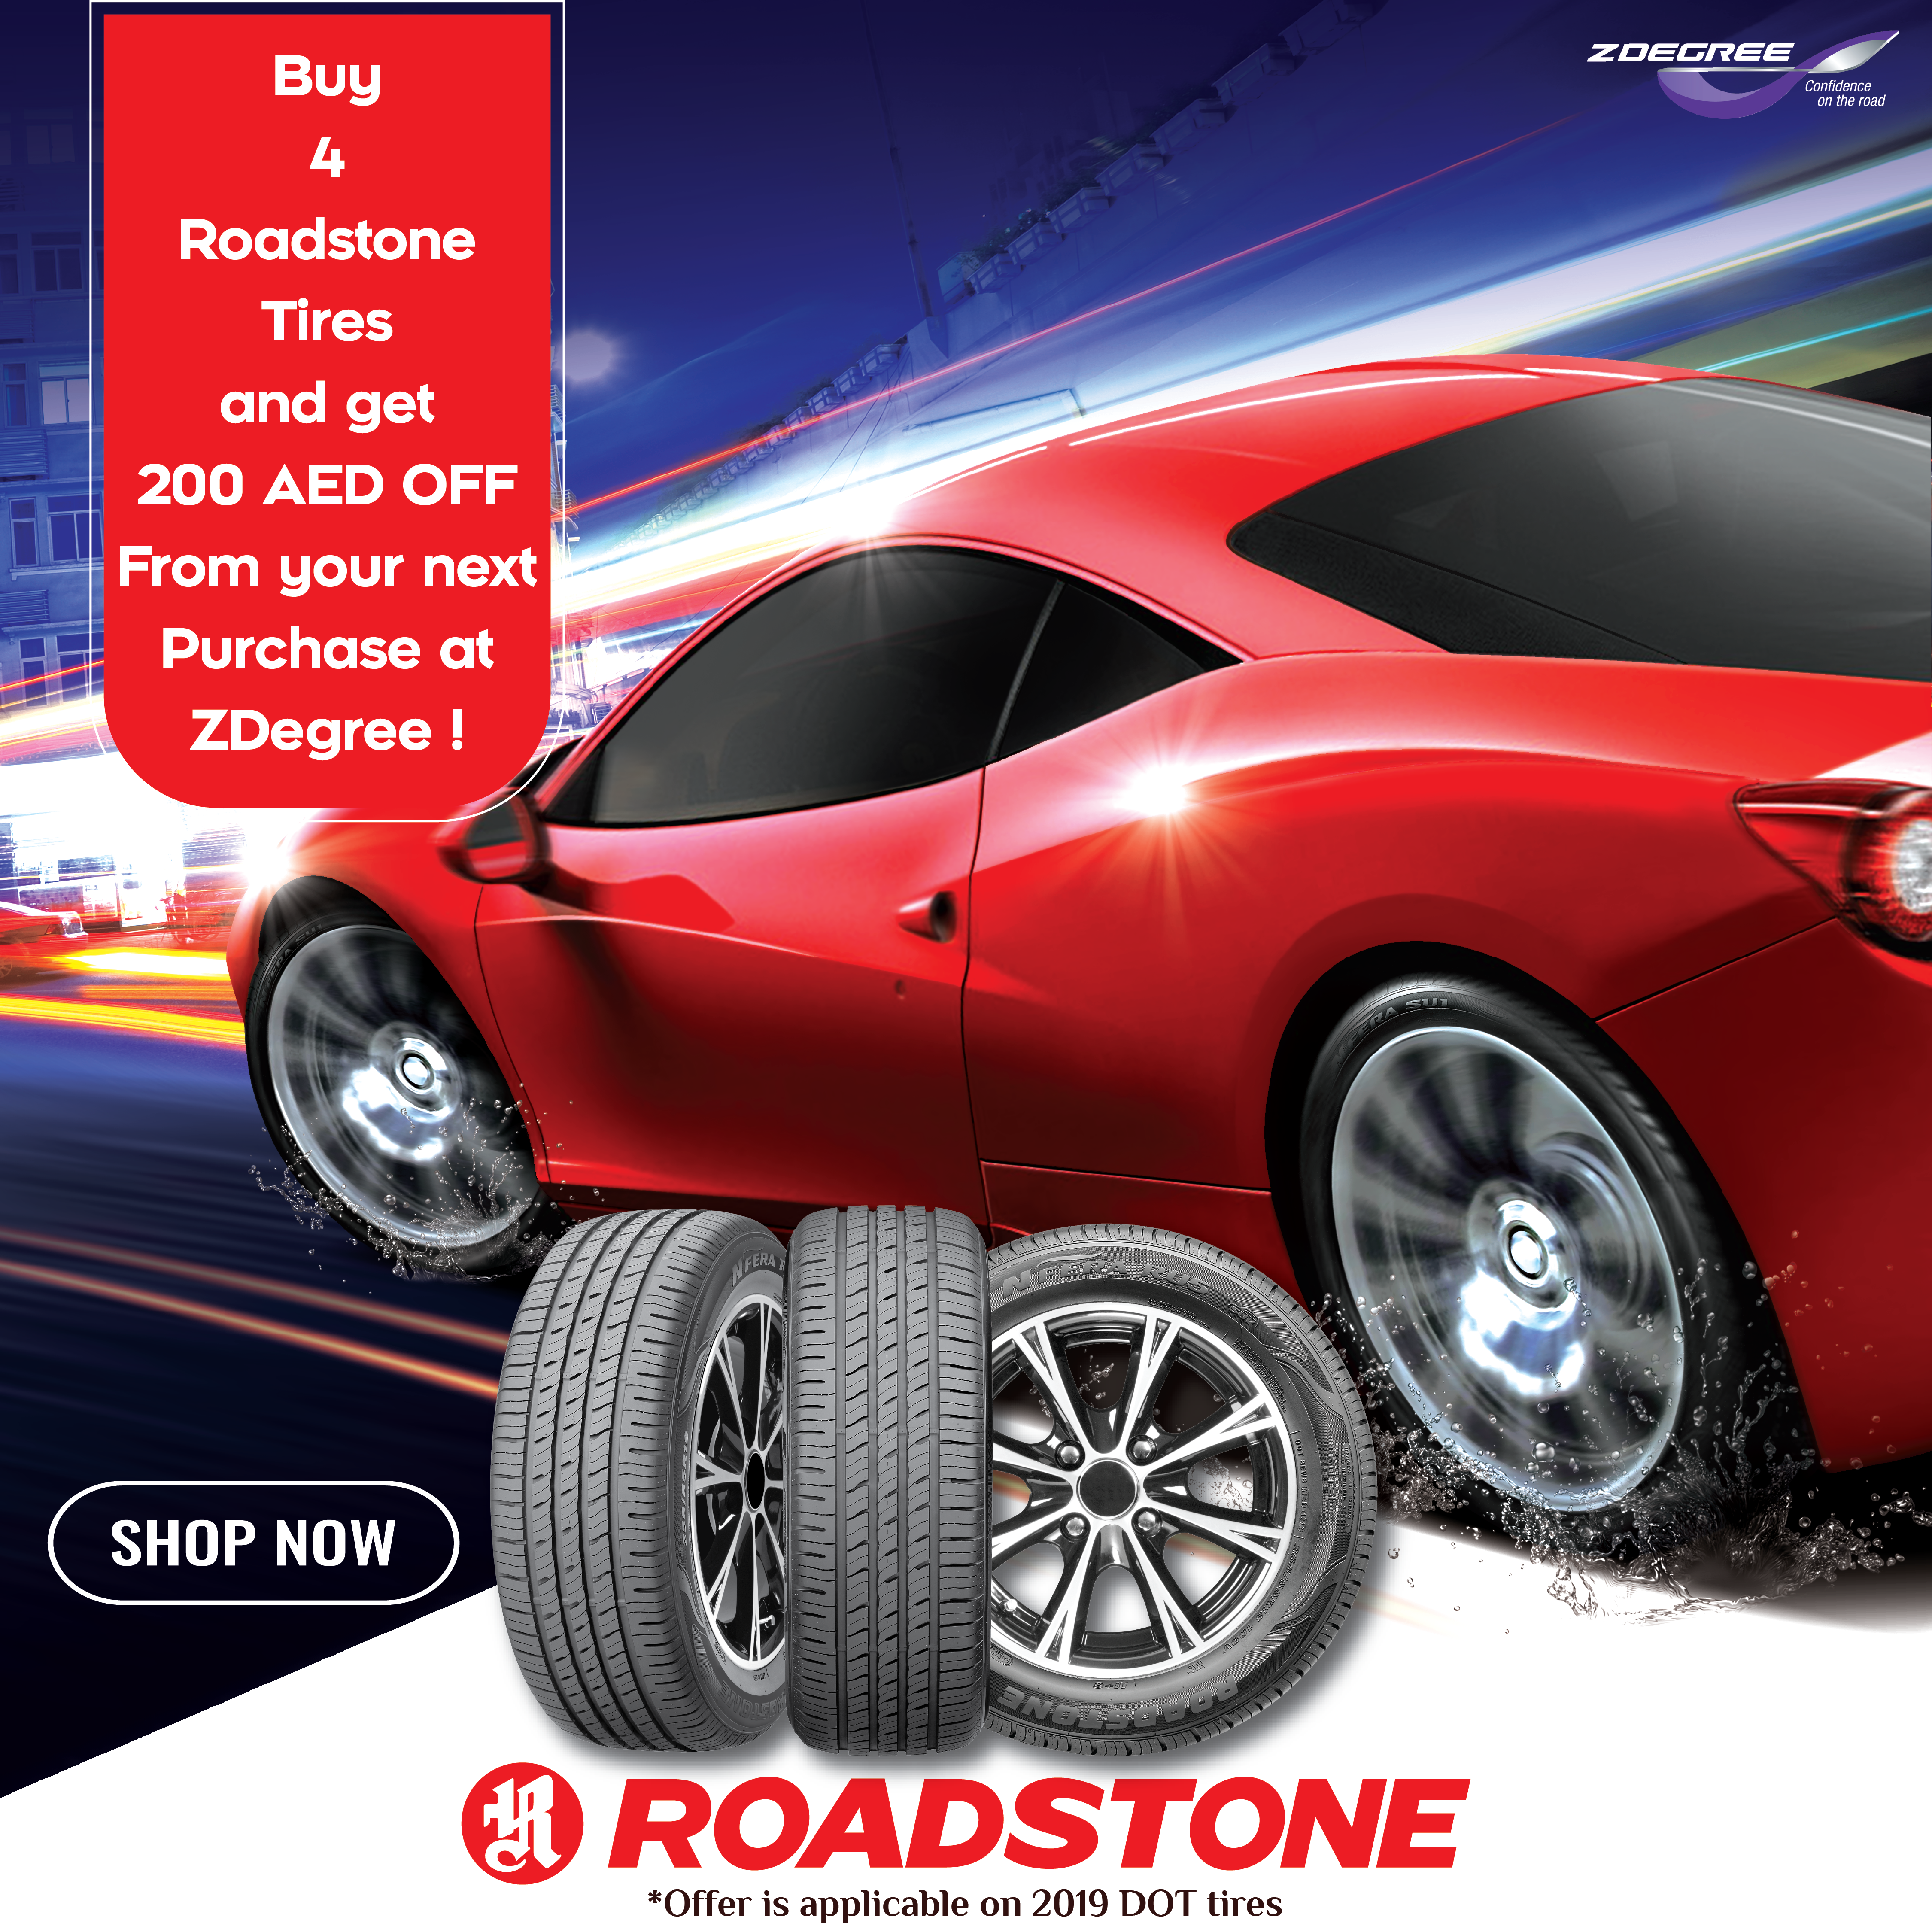 Buy 4 Roadstone Tires And Get 200 Aed Off Tyre Shop Buy Tires Auto Service